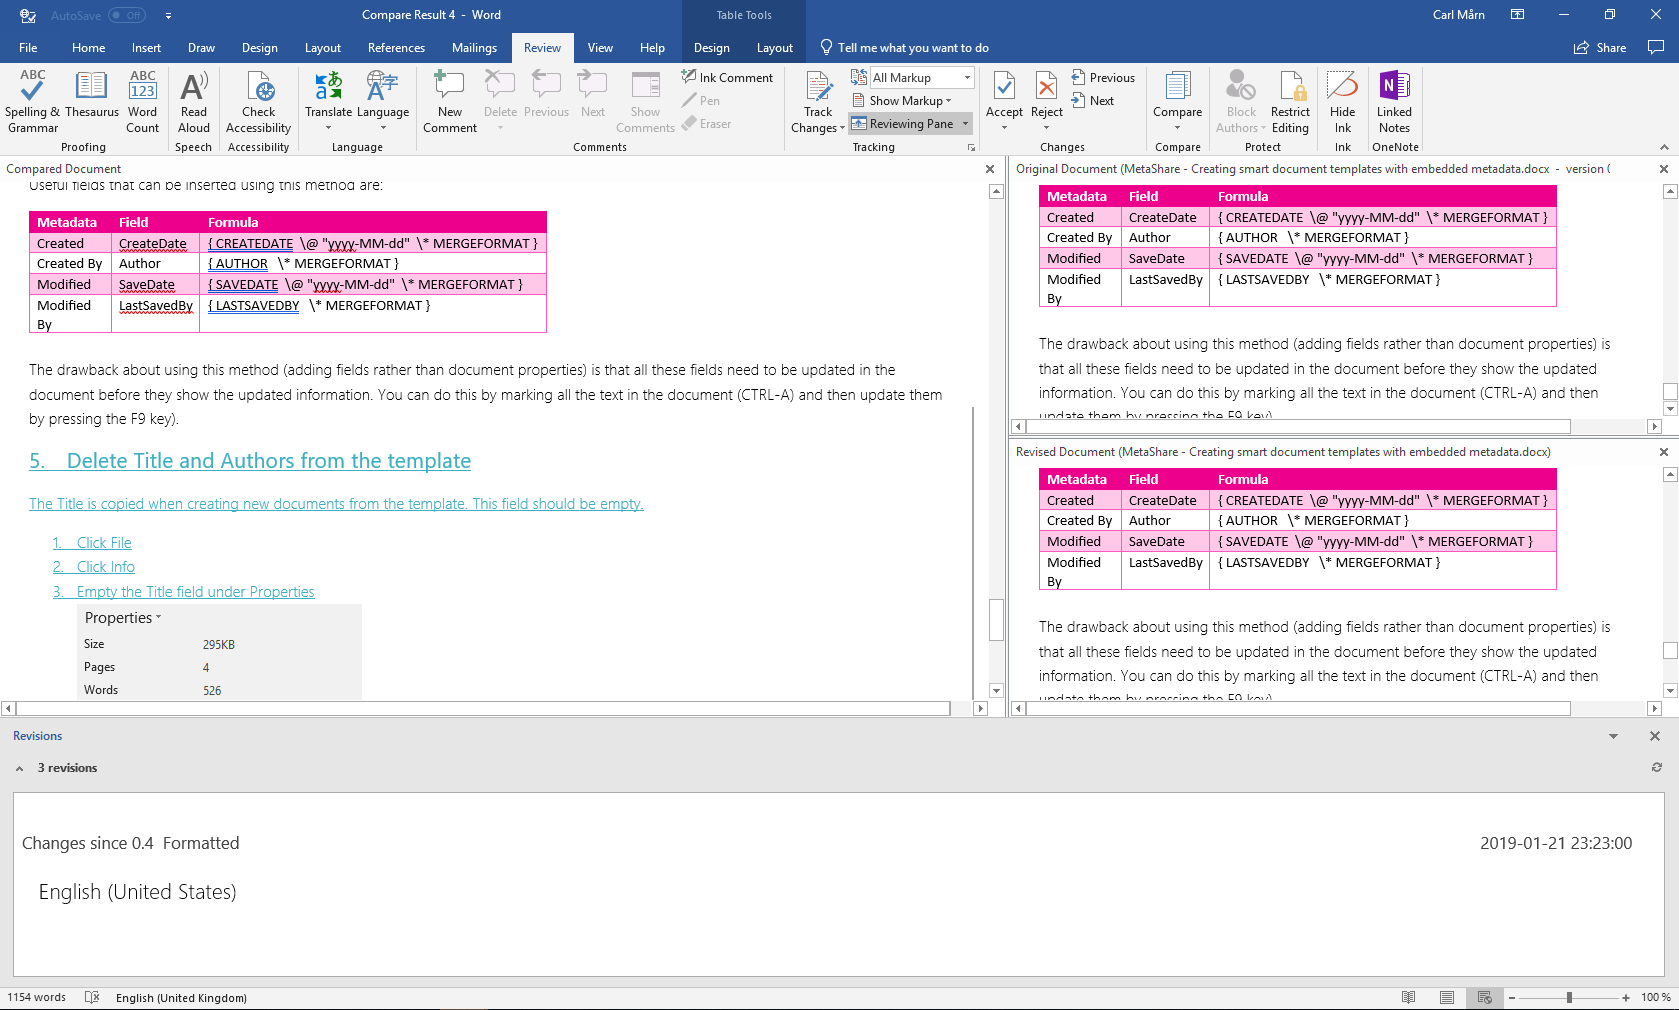 Showing the differences between two different document versions